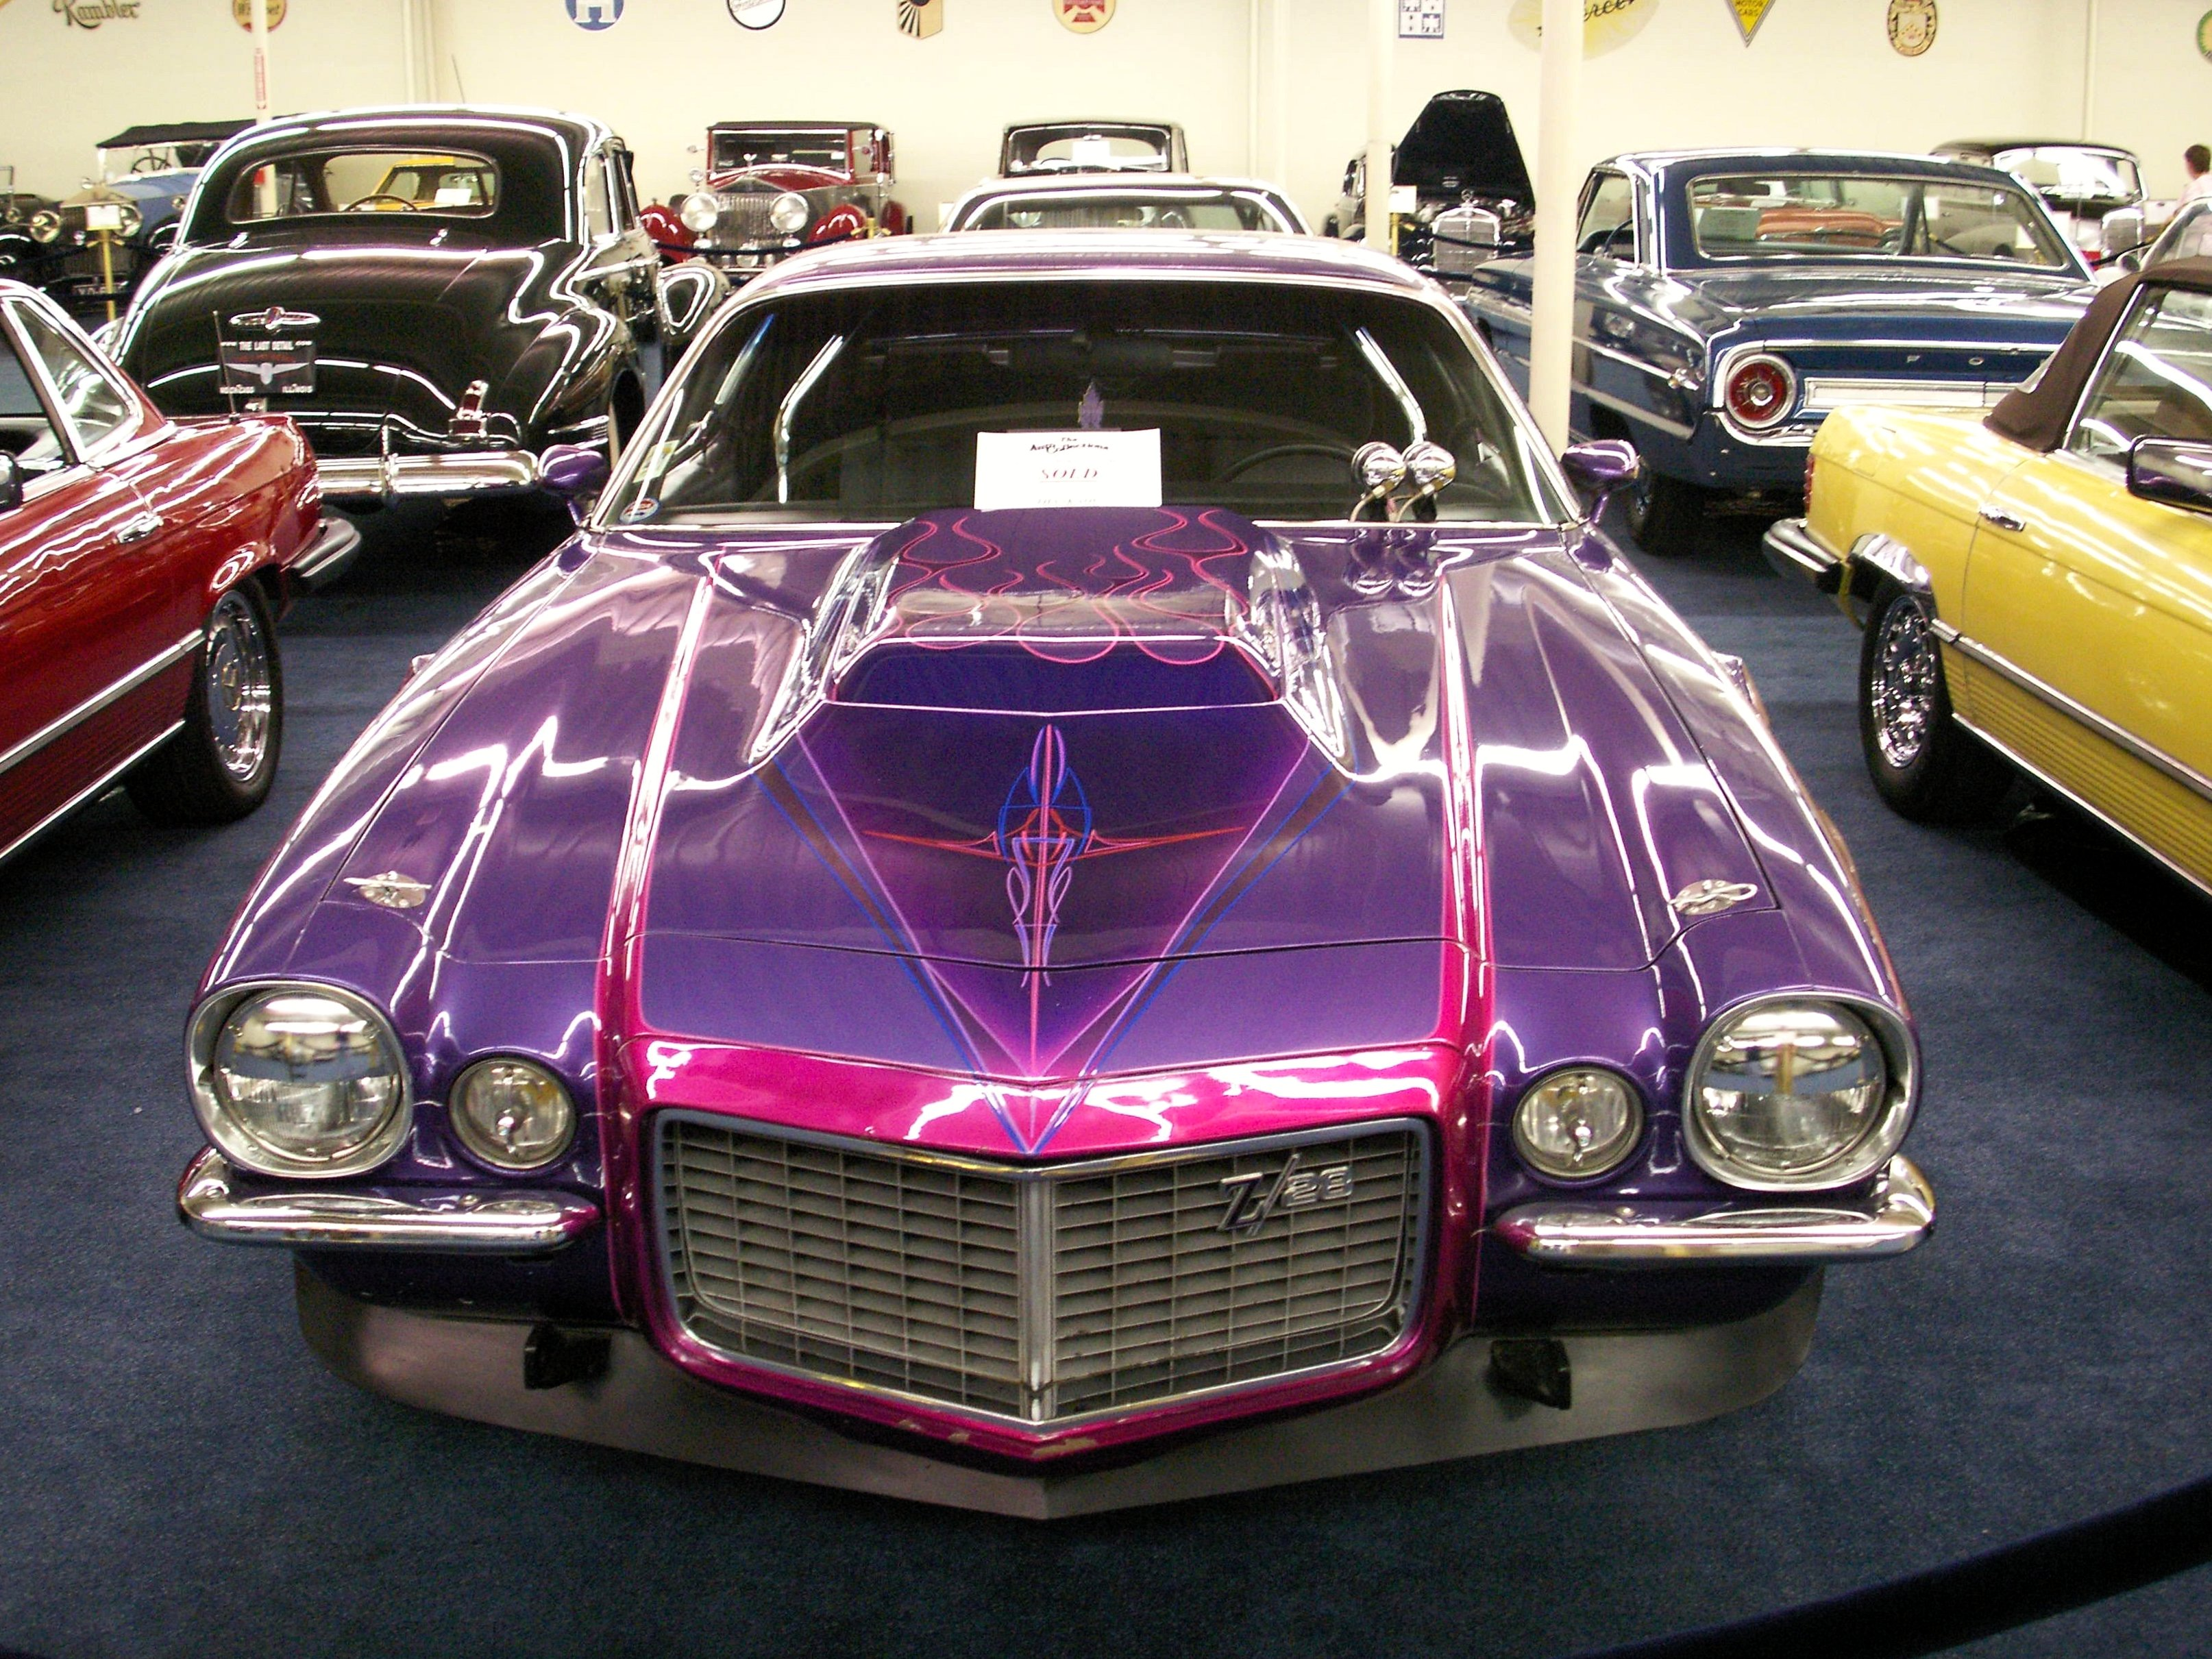 File 1973 Pimpin Purple Camaro At The Auto Collections Imperial Palace Hotel